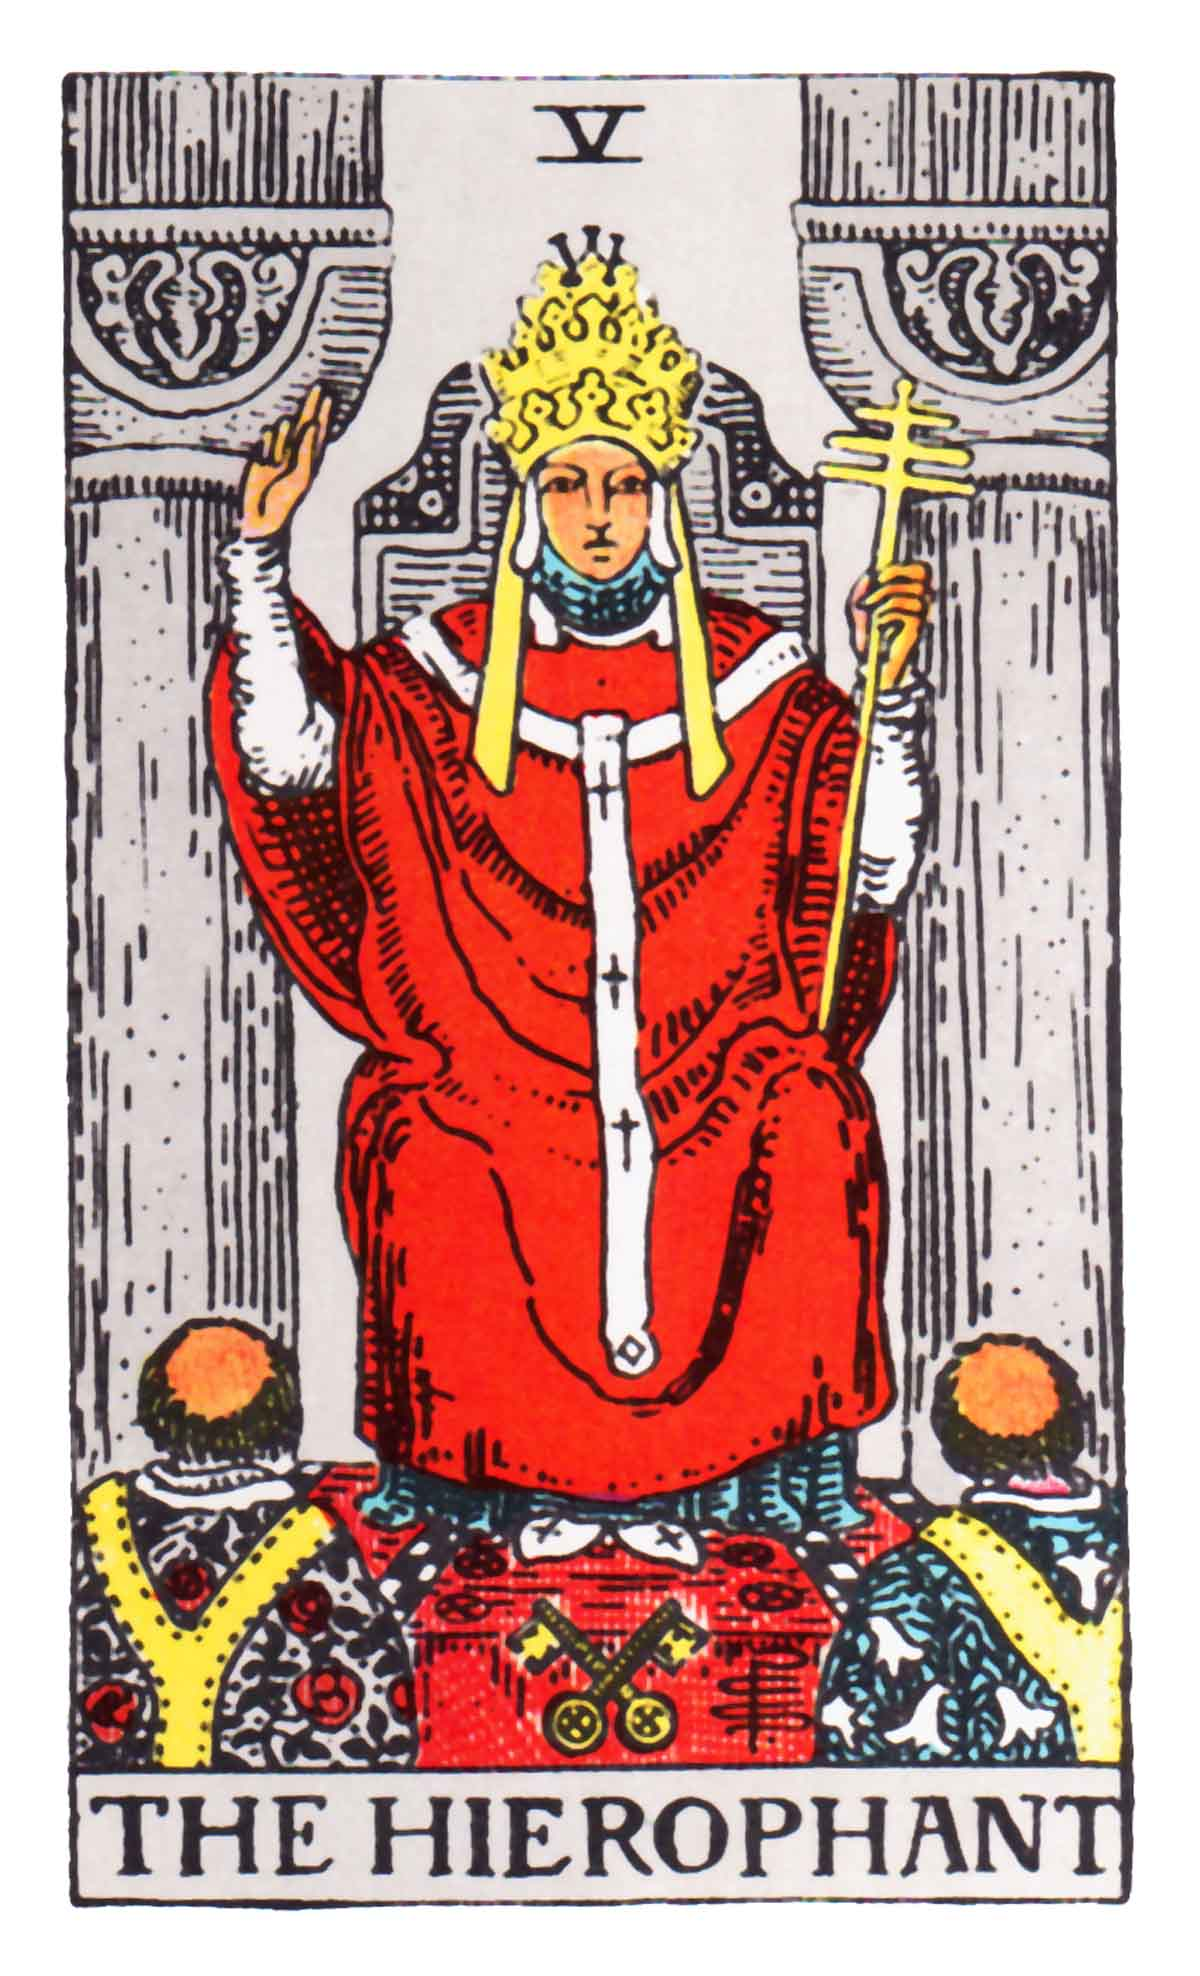 The Hierophant Tarot Card Meaning In Readings: Elevated